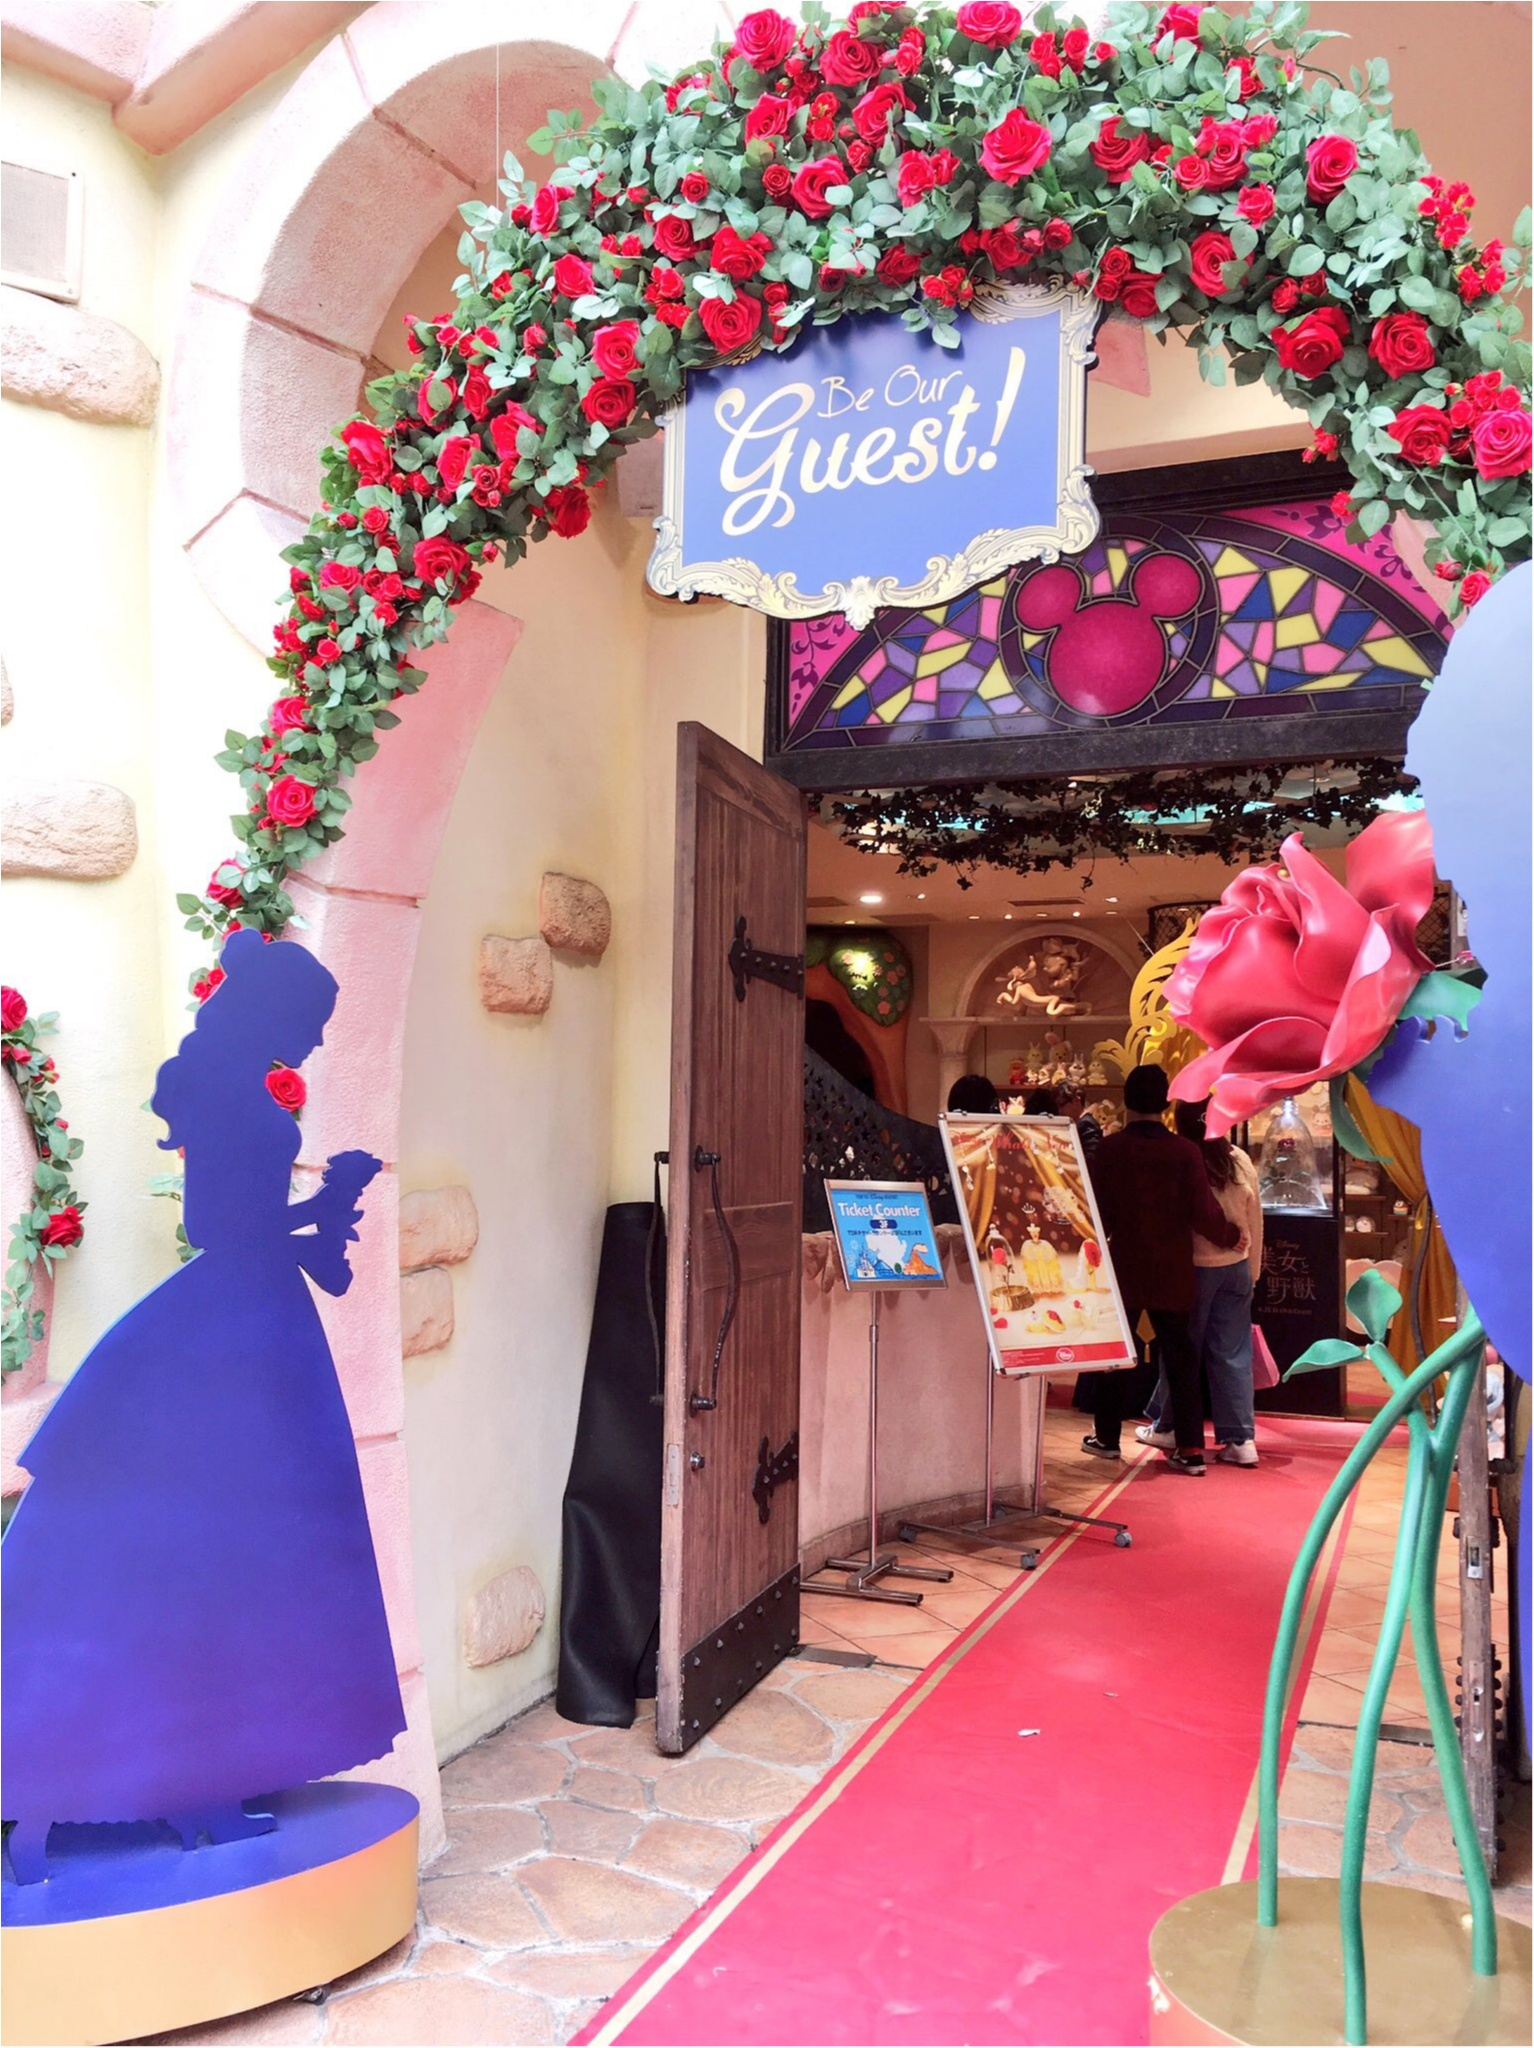 ♡Be Our Guest♡まるで舞踏会に招待されたみたい!渋谷ディズニーストアの『美女と野獣』デコレーションをご紹介(﹡´◡`﹡ )_2